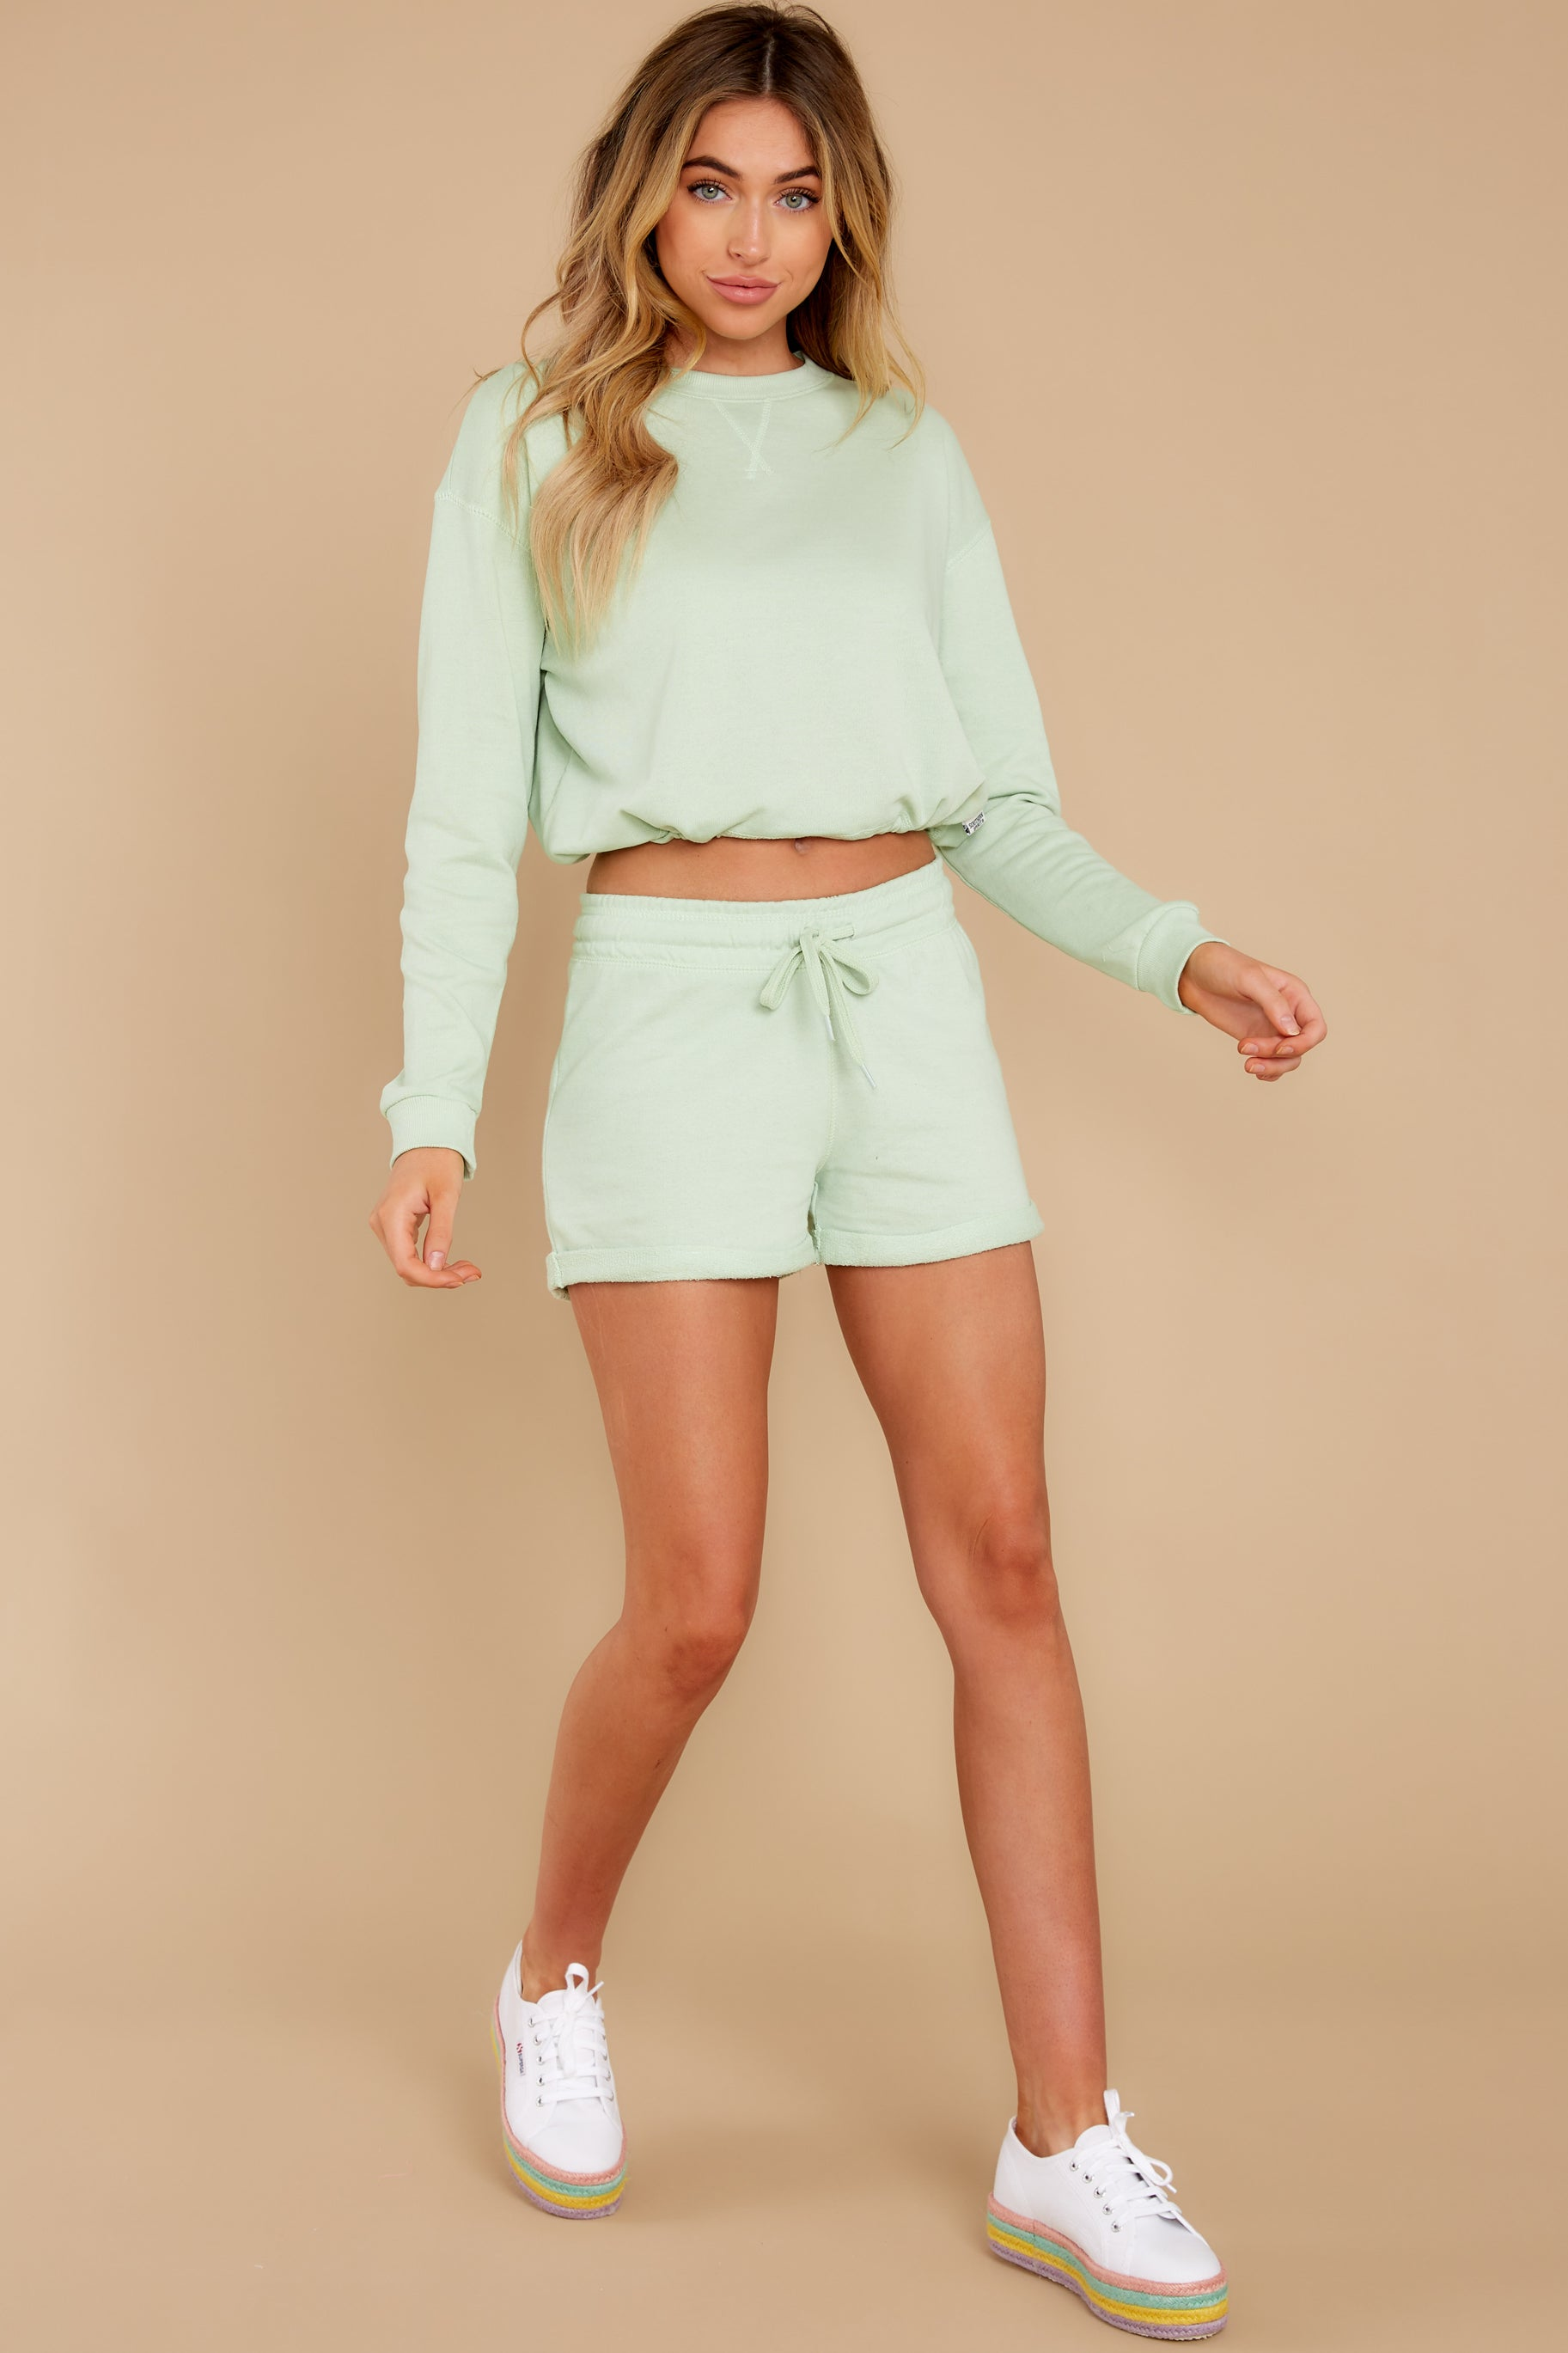 4 Such A Sweetheart Pastel Green Shorts at reddress.com